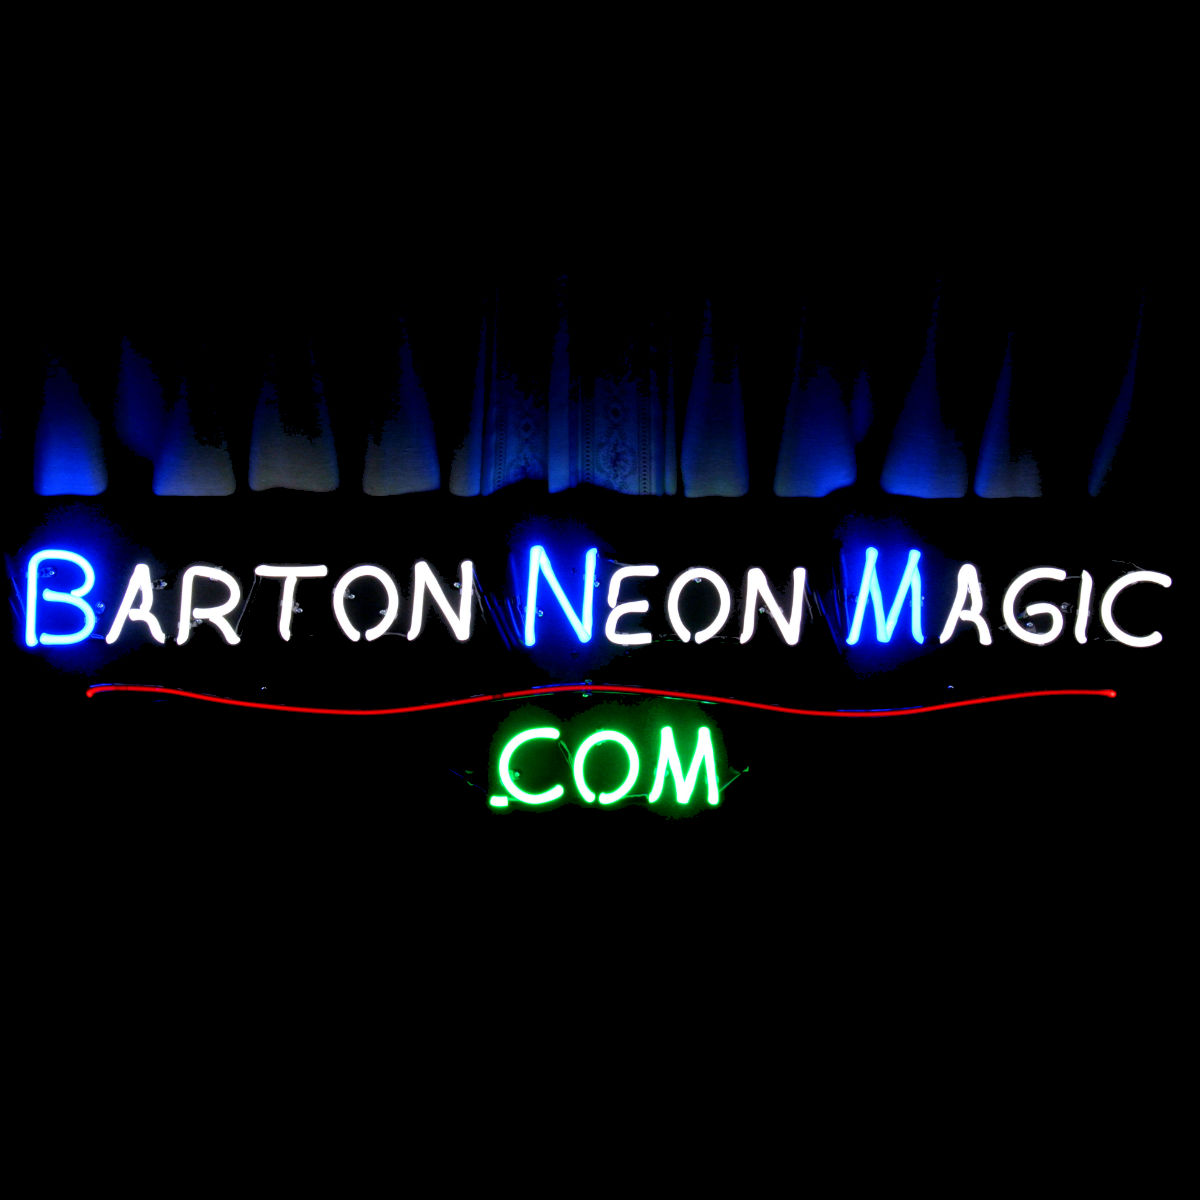 CUSTOM HAND-BLOWN NEON ART by John Barton - BartonNeonMagic.com